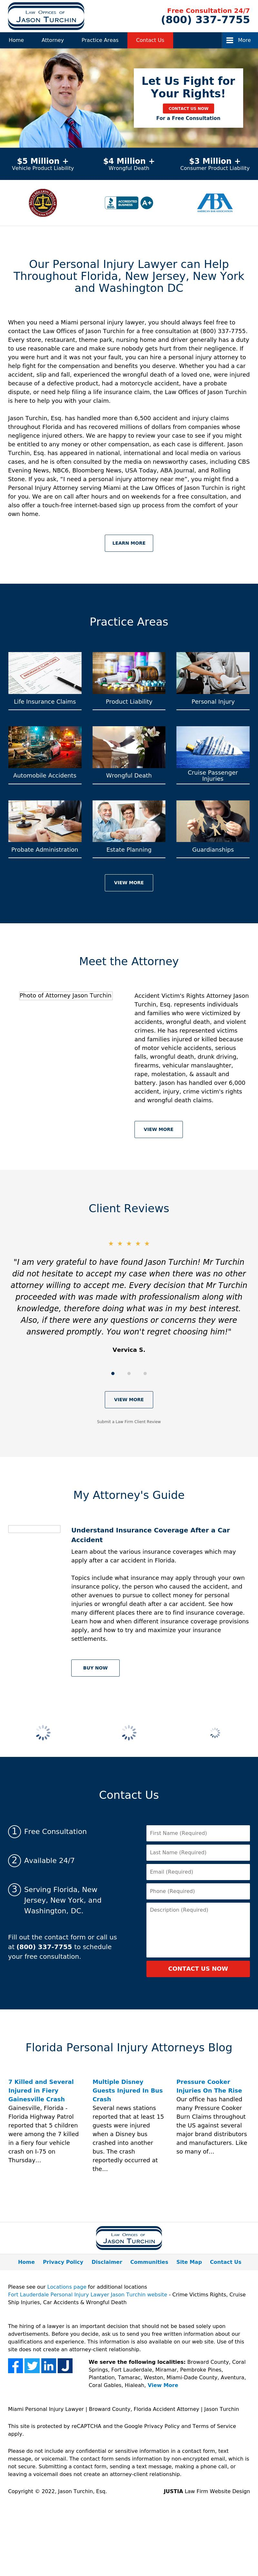 Law Offices of Jason Turchin - Miami FL Lawyers